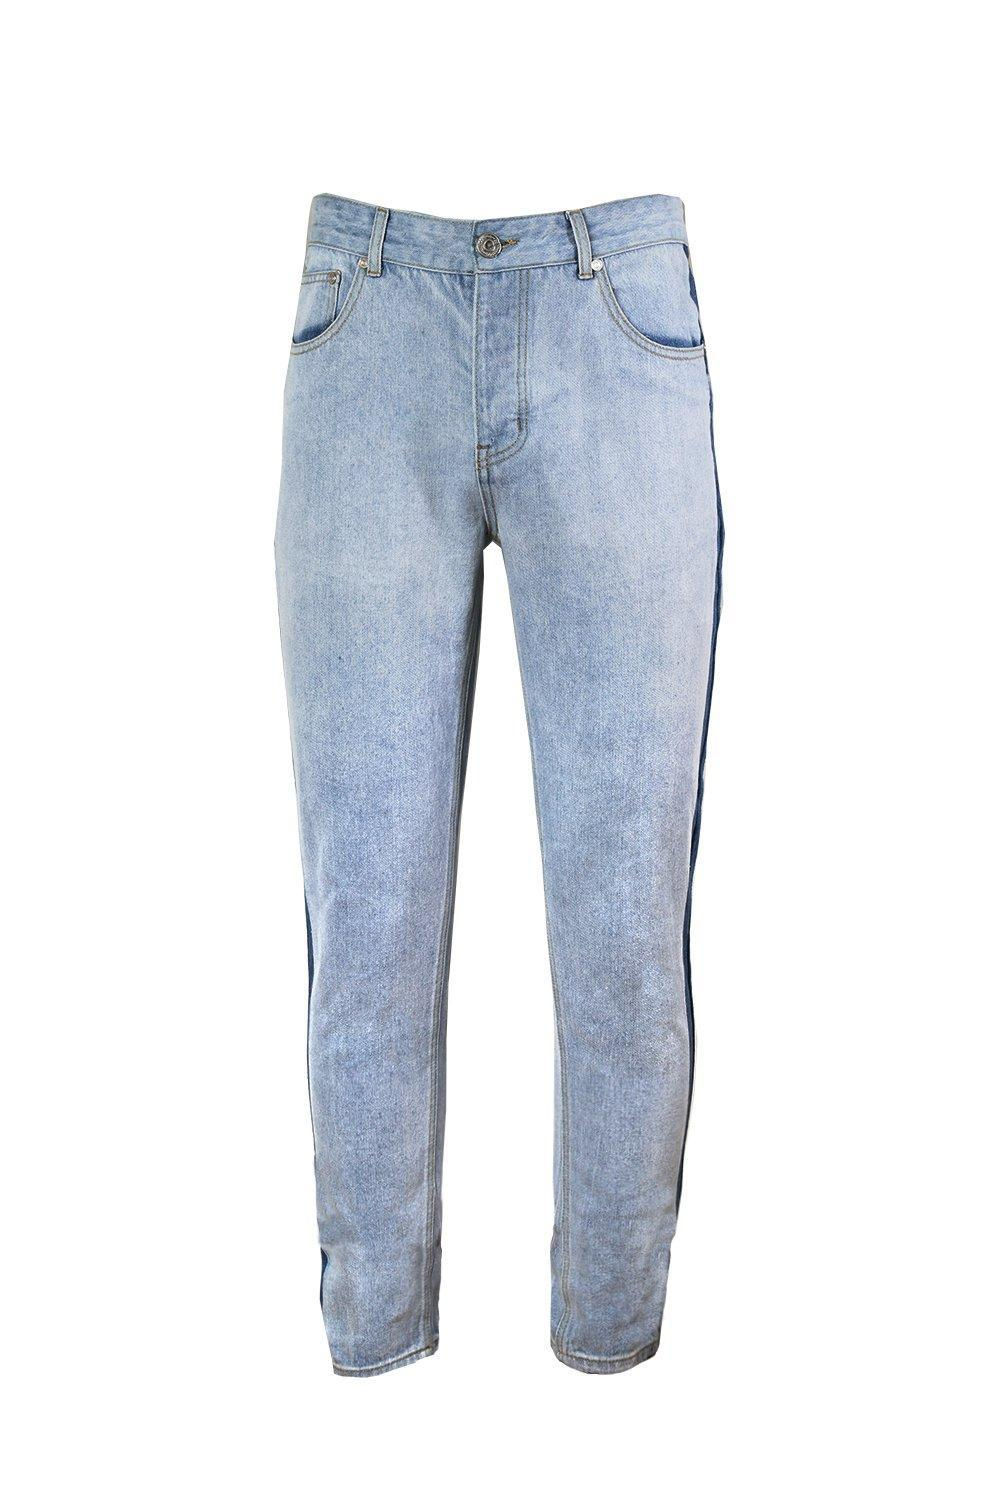 With Washed Boohoo Side Fit Lyst Blue For Jeans Seam Men In Skinny wFxq6Ag